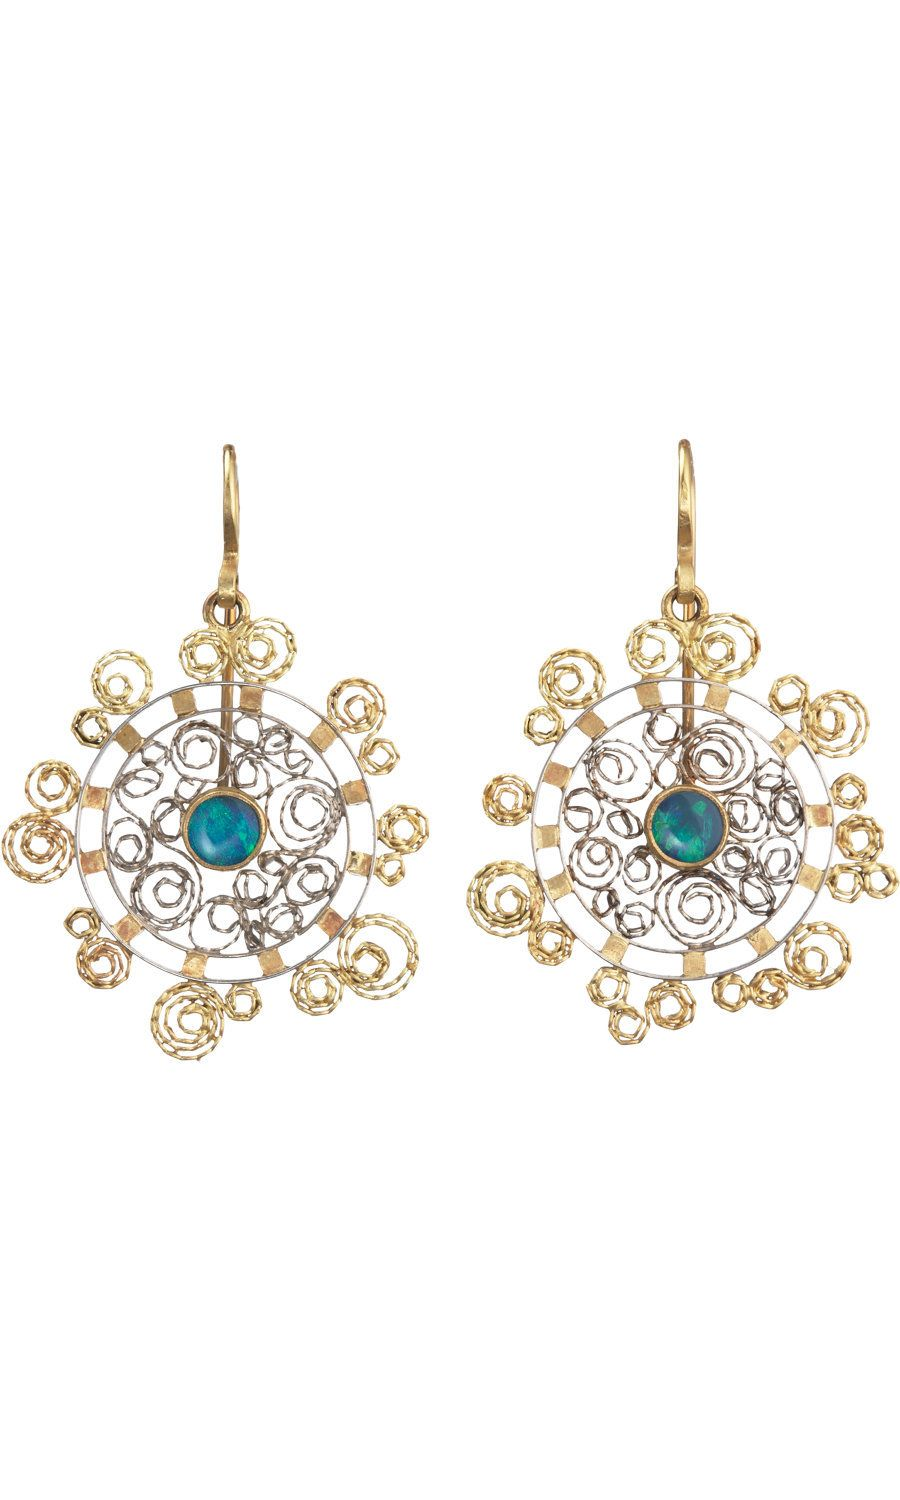 702a1f601 Opal small round filigree earrings | Accesorize | Pinterest ...